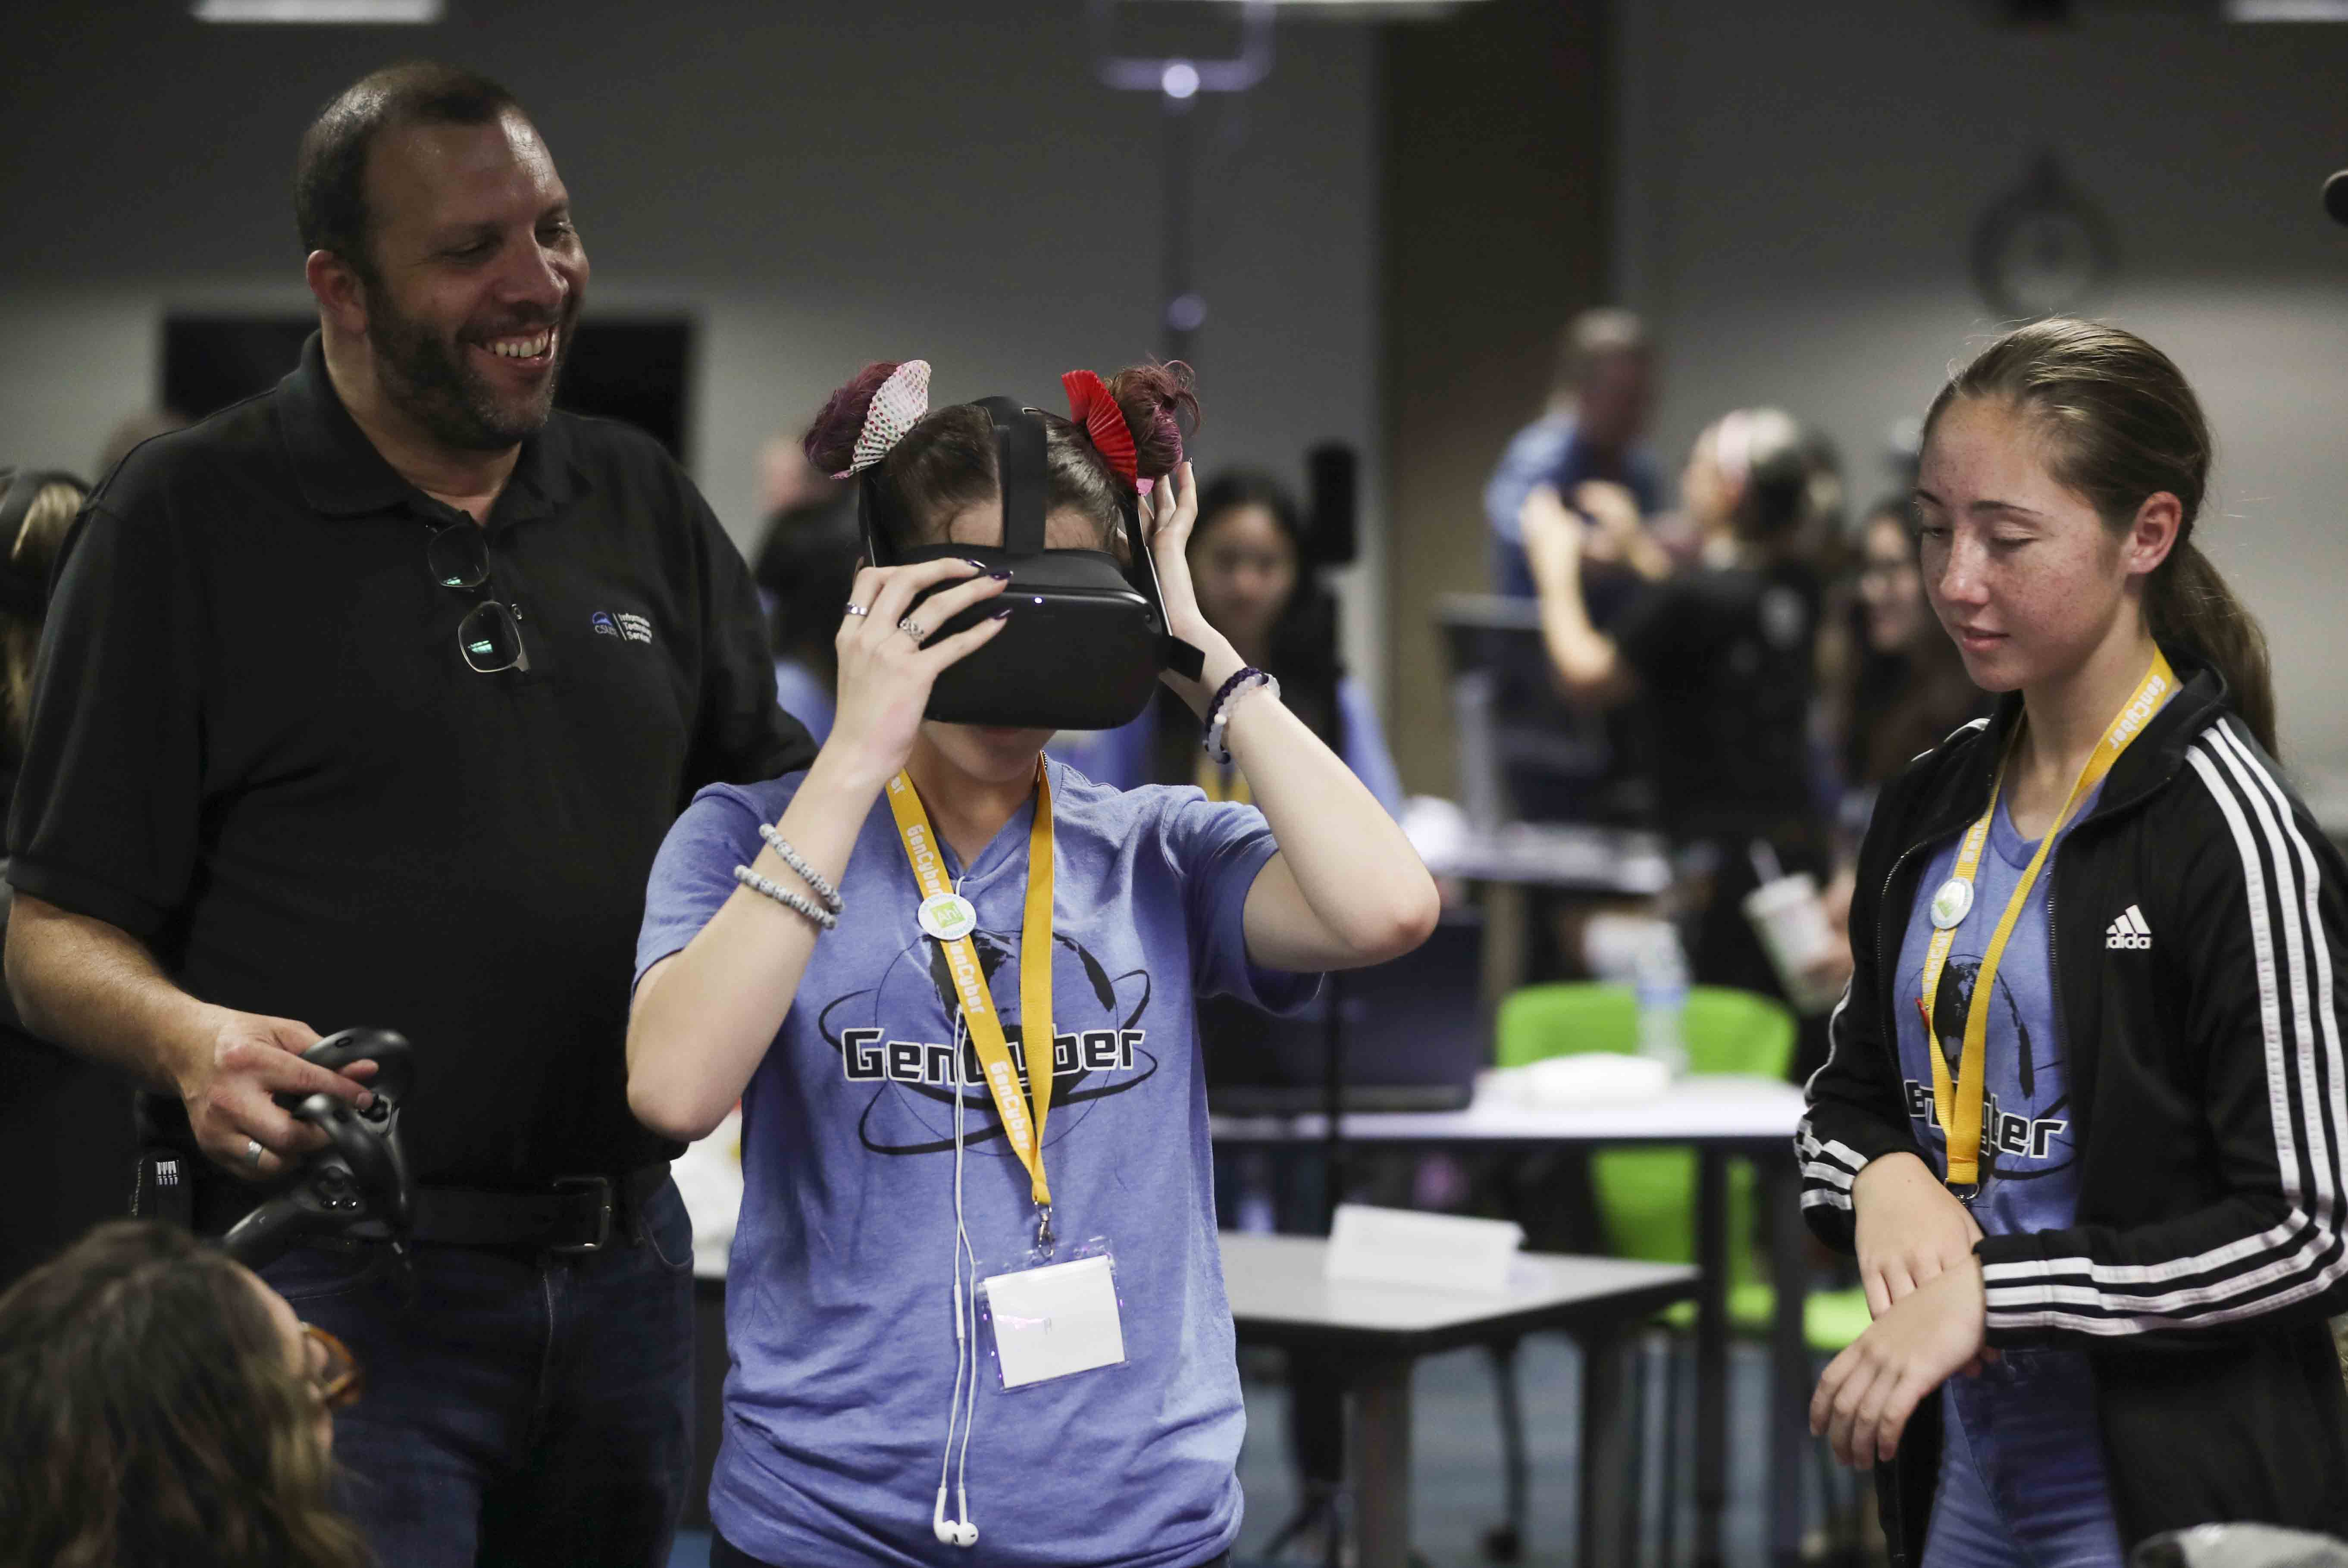 Checking out a virtual reality headset at GenCyber camp.